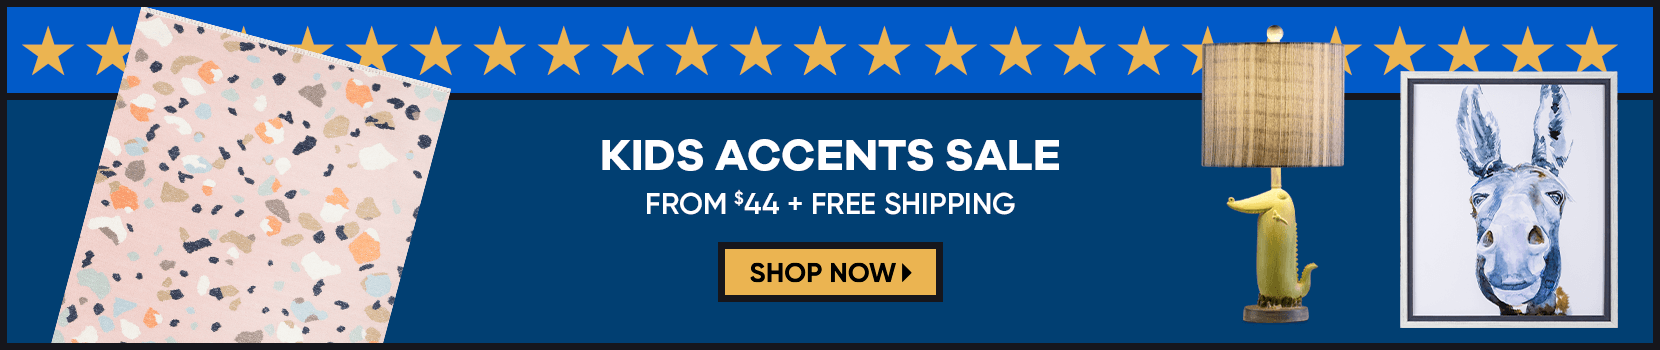 kids accents sale from $44 + free shipping. shop now